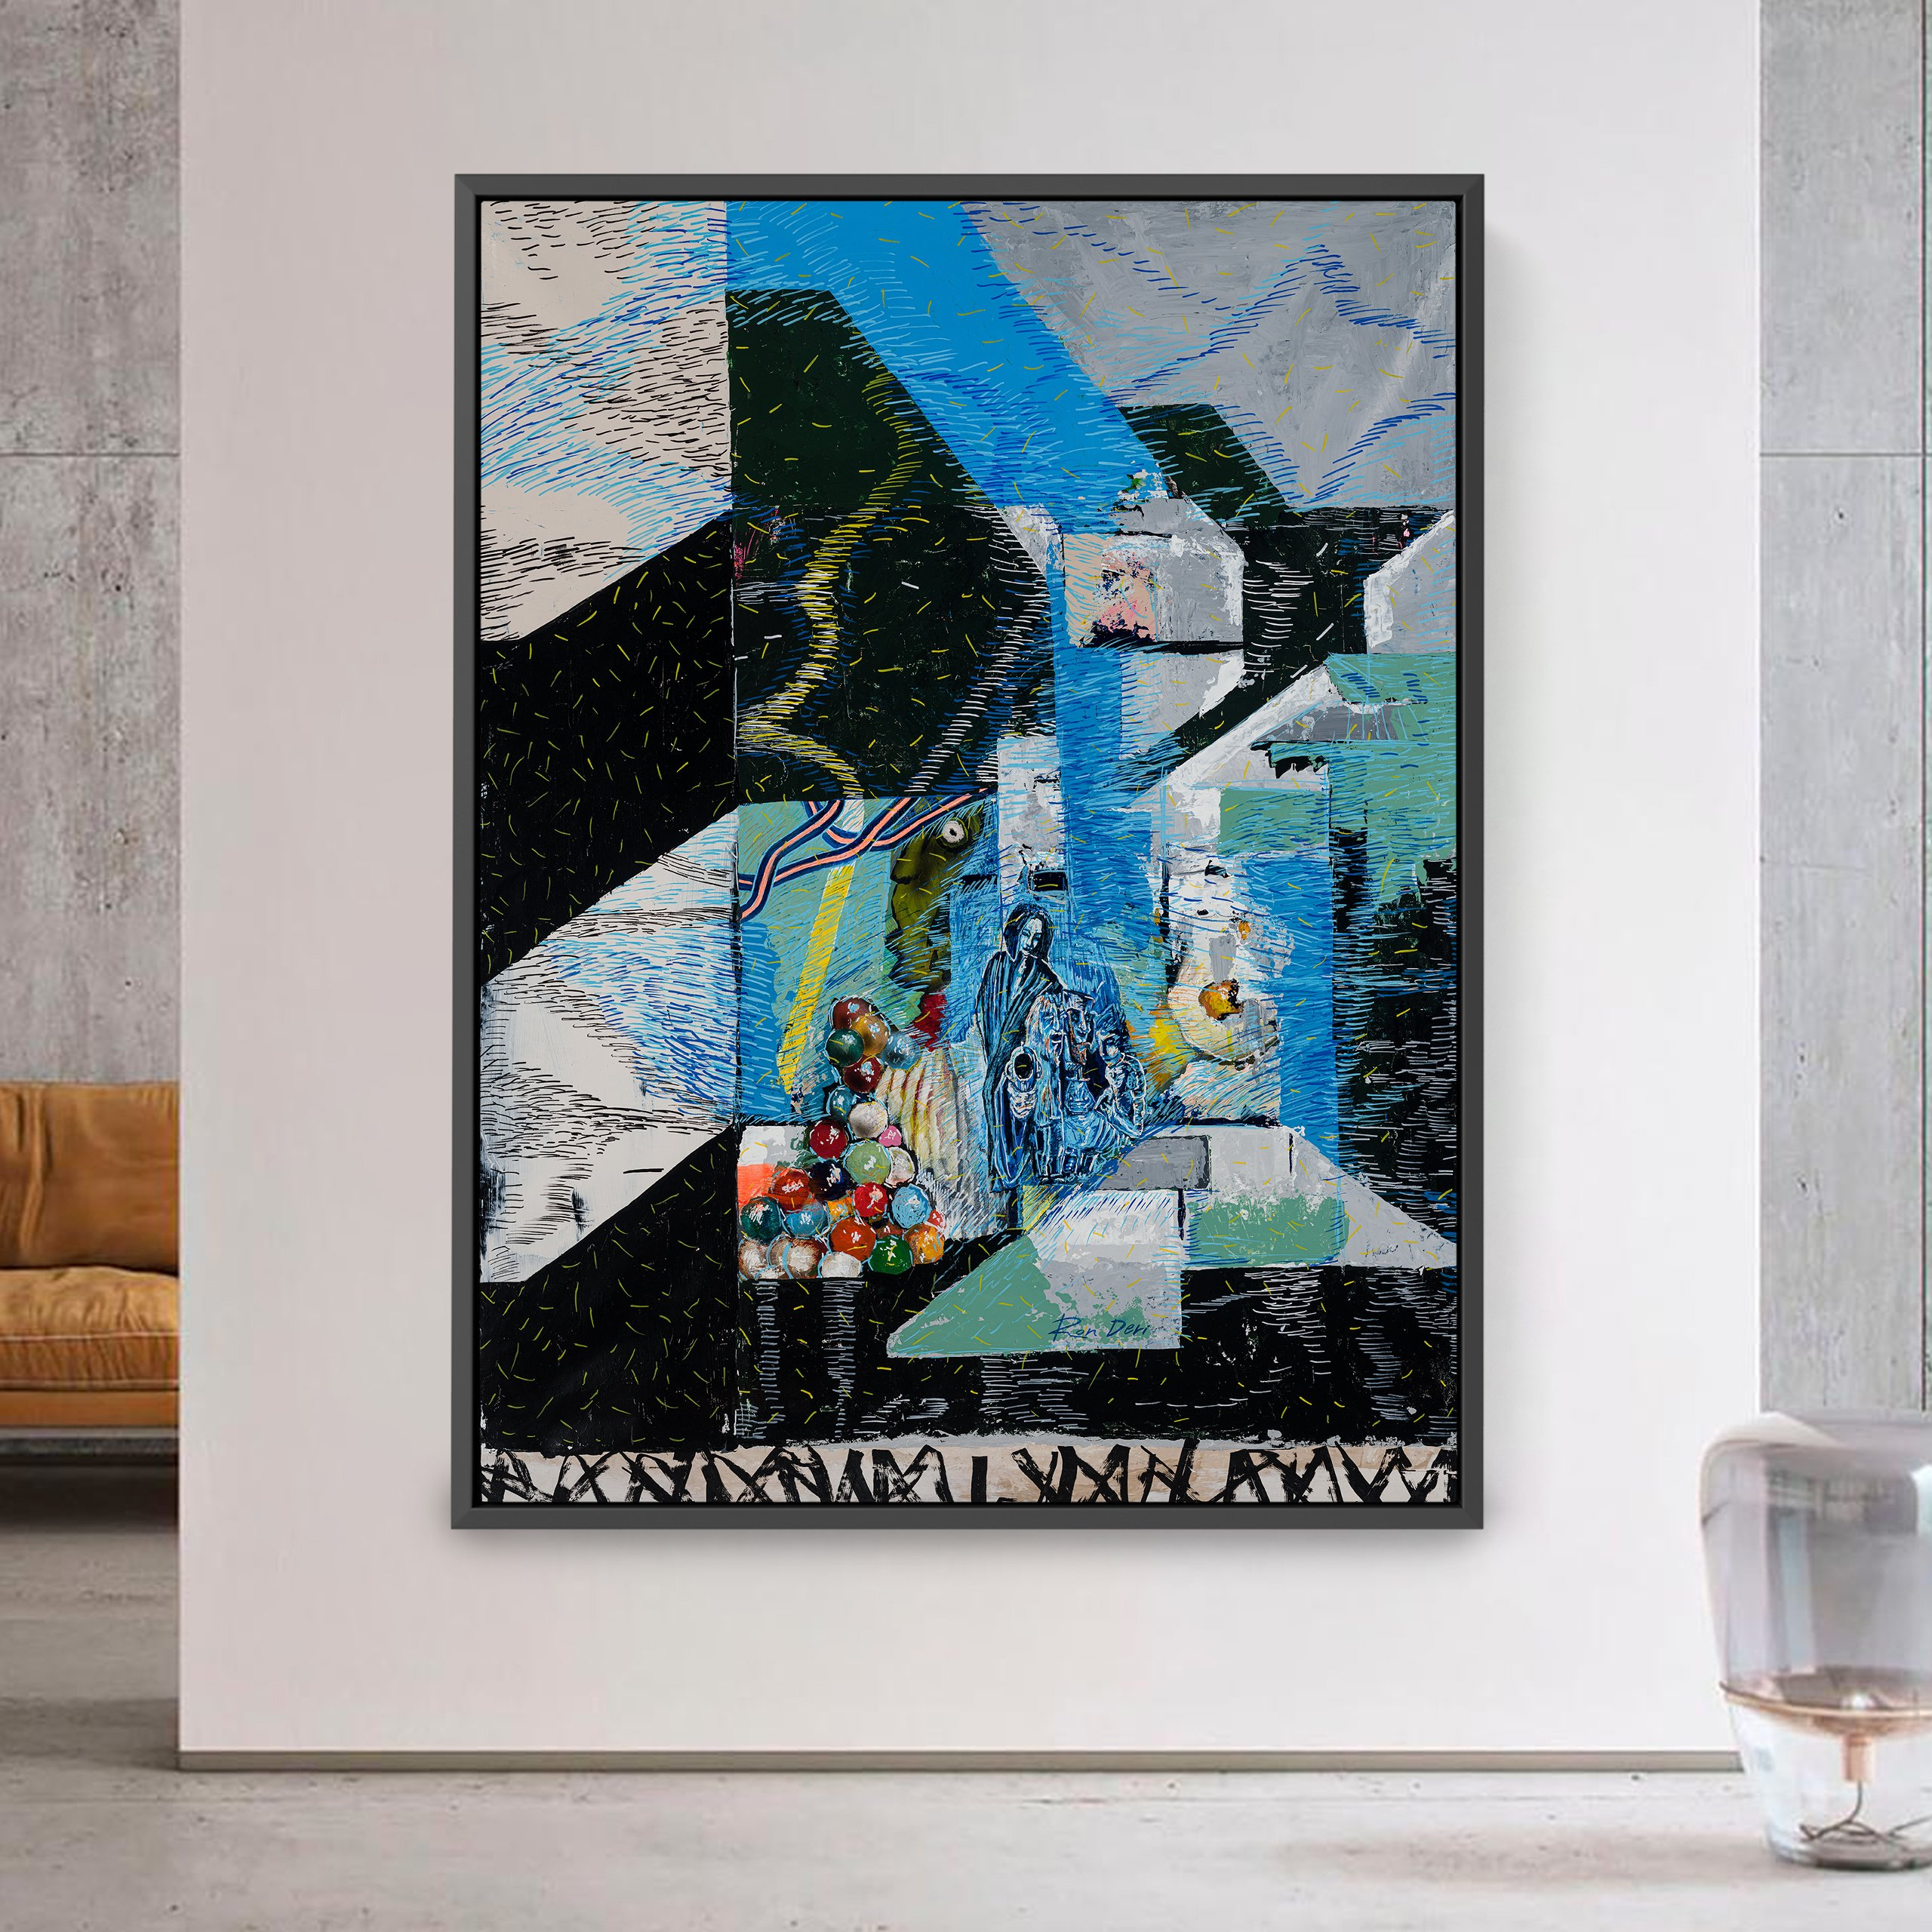 conspiracy-ron-deri-minimalism-abstract-painting